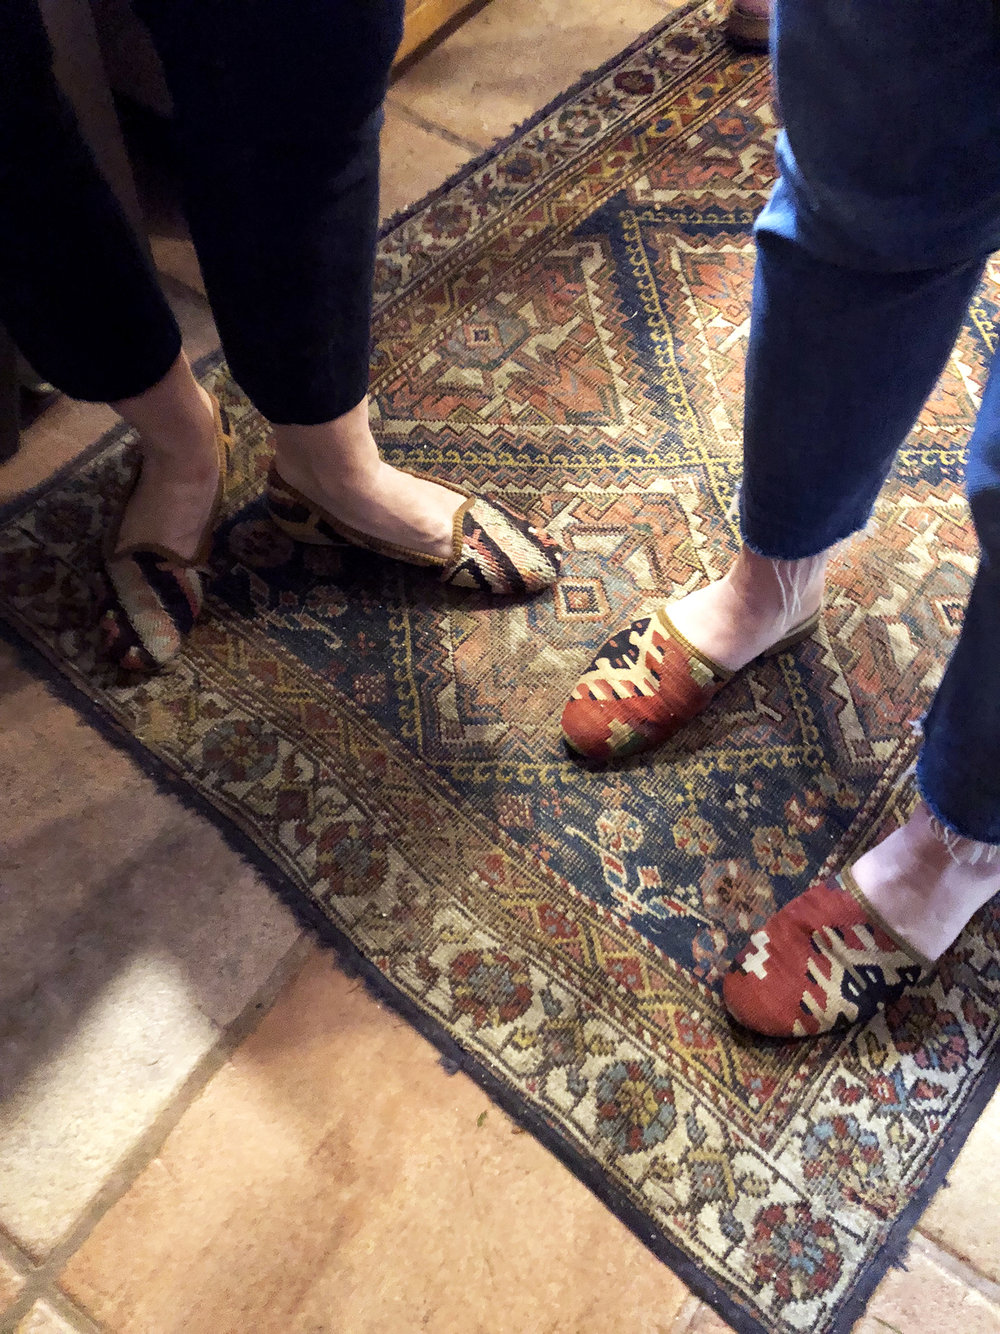 Kilim shoes at a family cocktail party.